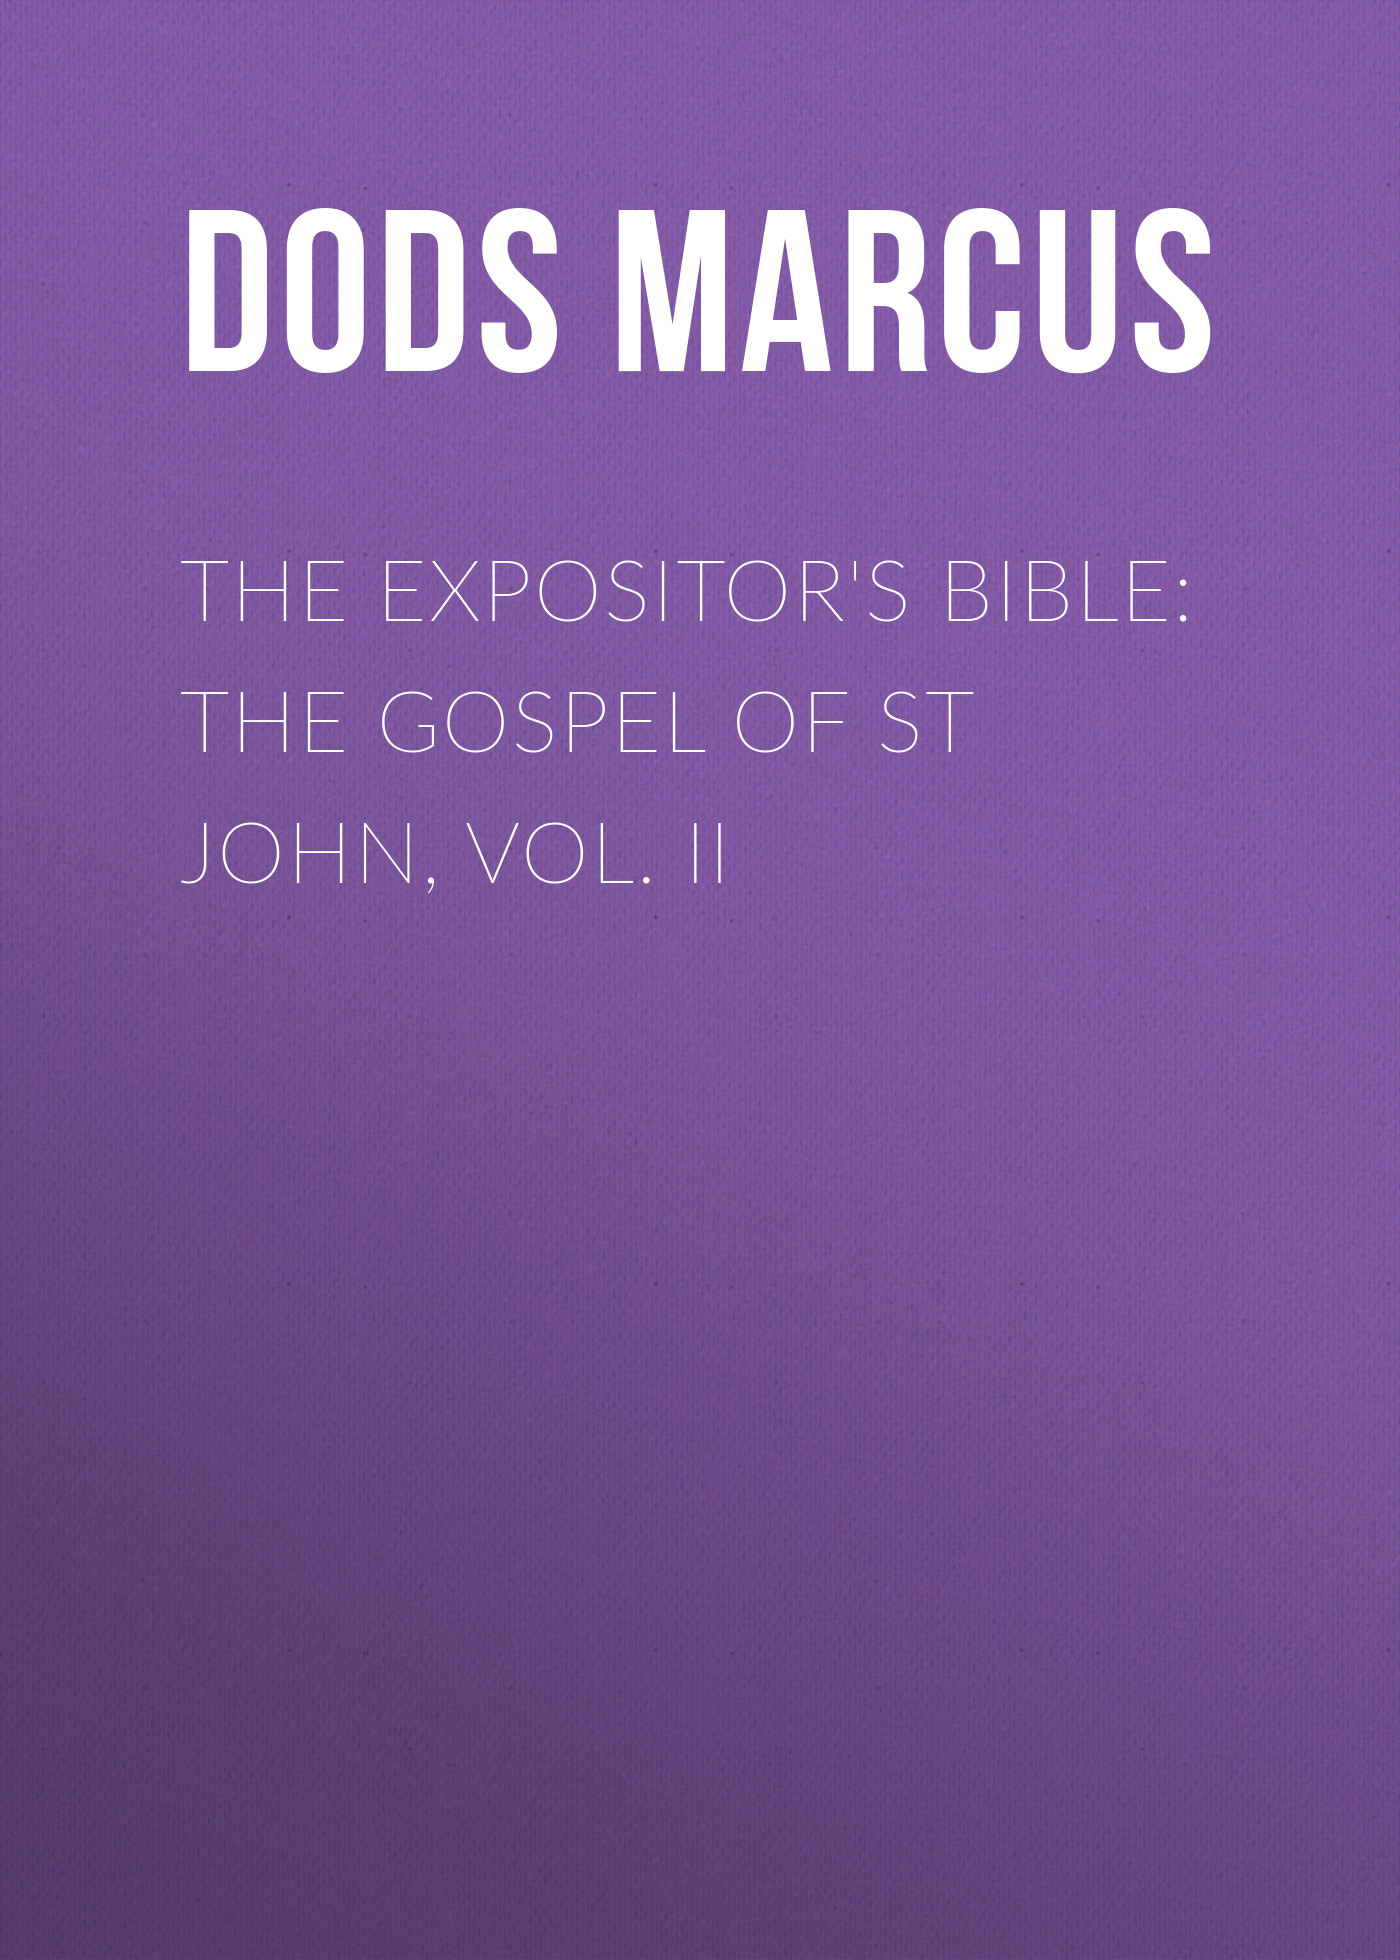 Dods Marcus The Expositor's Bible: The Gospel of St John, Vol. II купить недорого в Москве